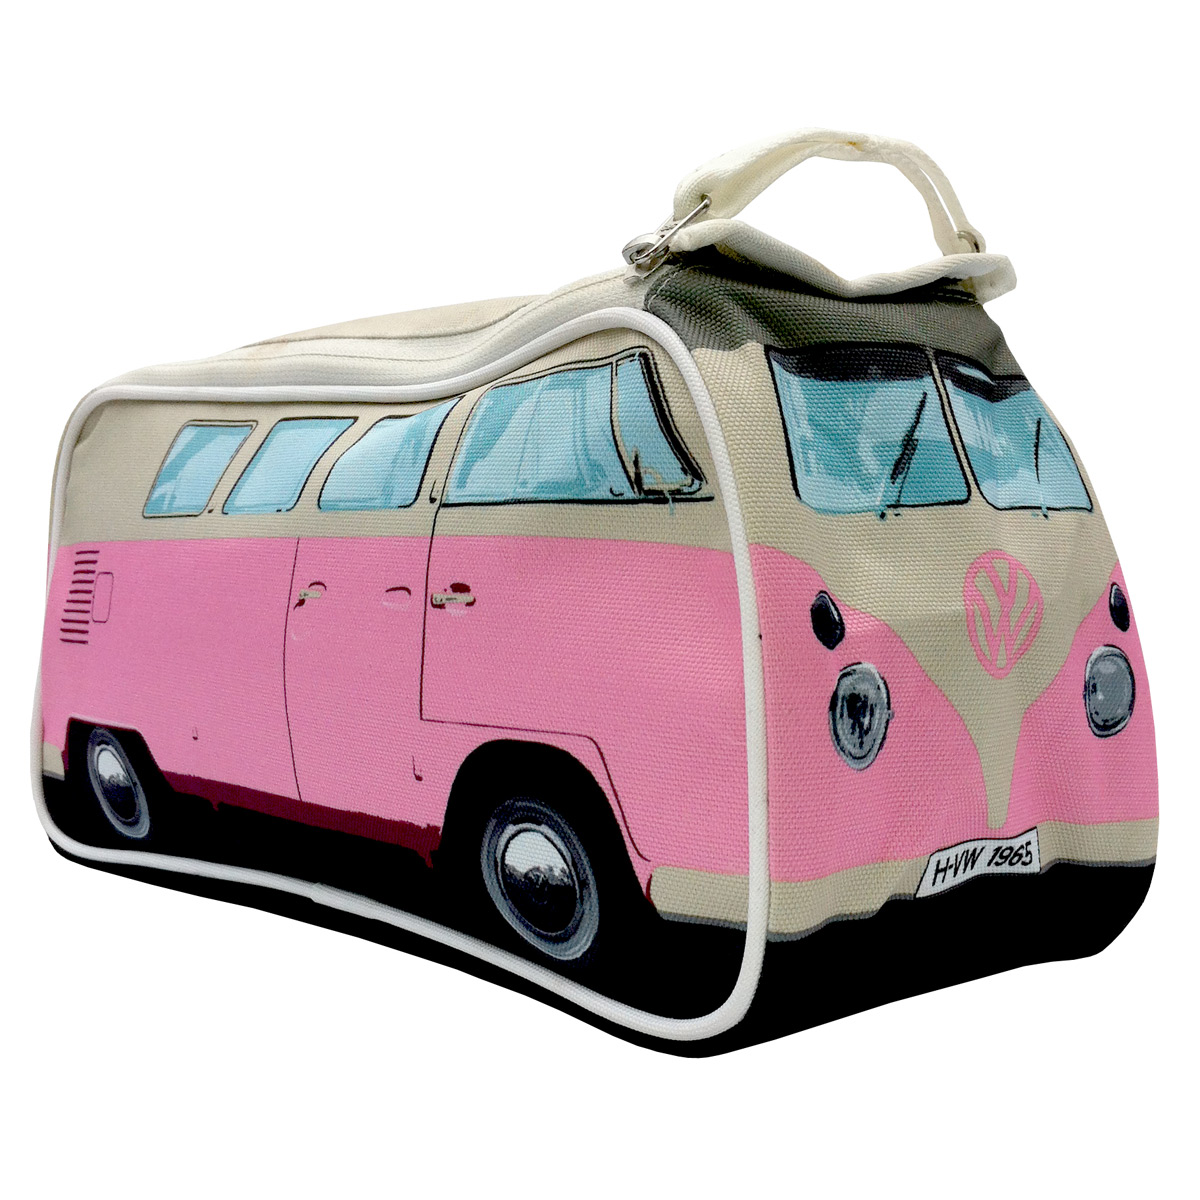 Kulturbeutel vw bus pink for Design 3000 de